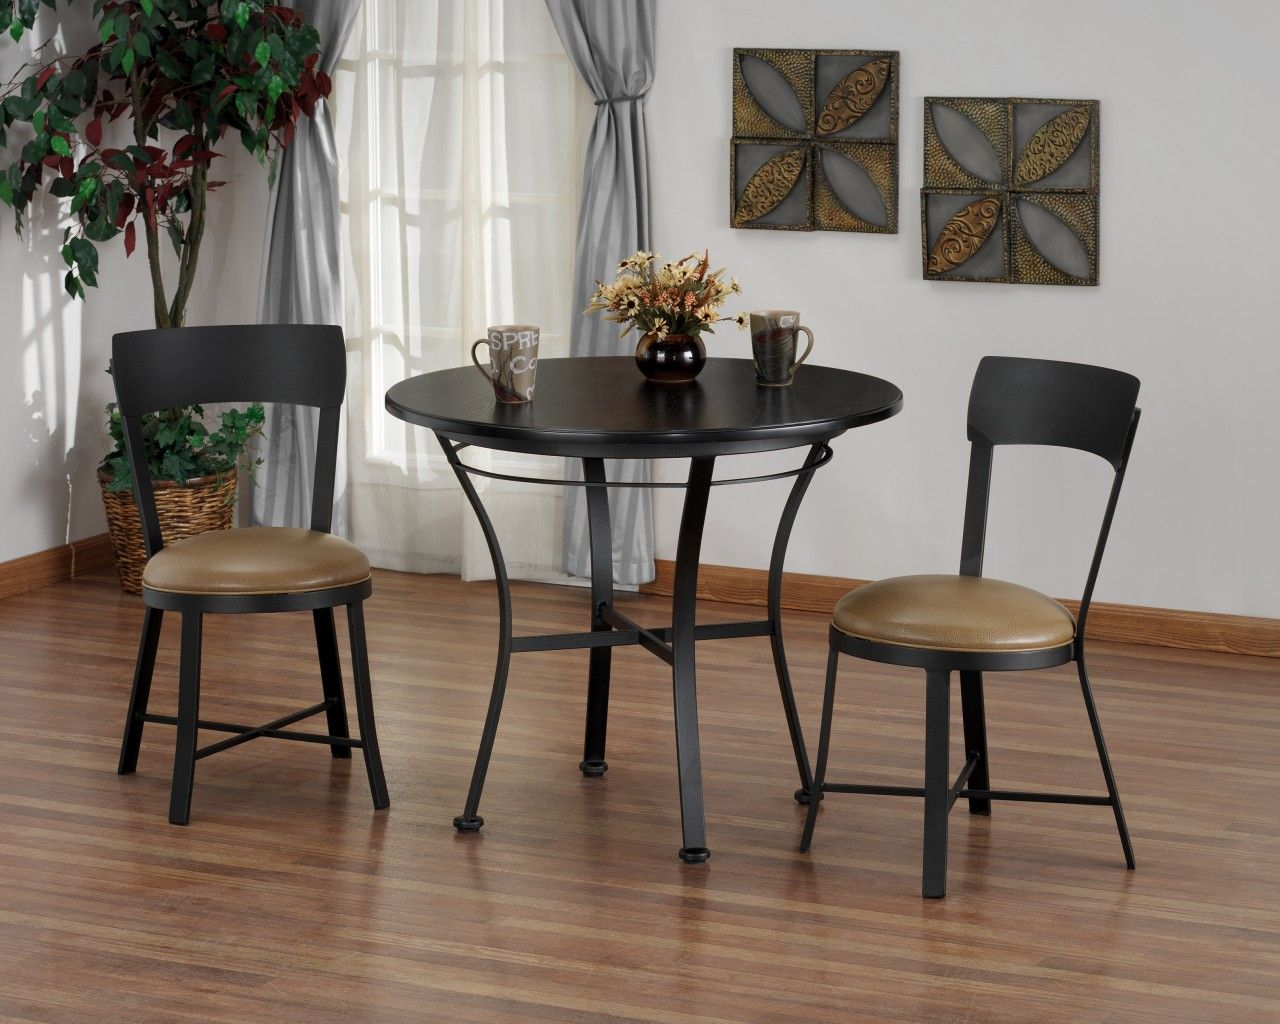 indoor bistro table and chairs in uk | bistro chair and table